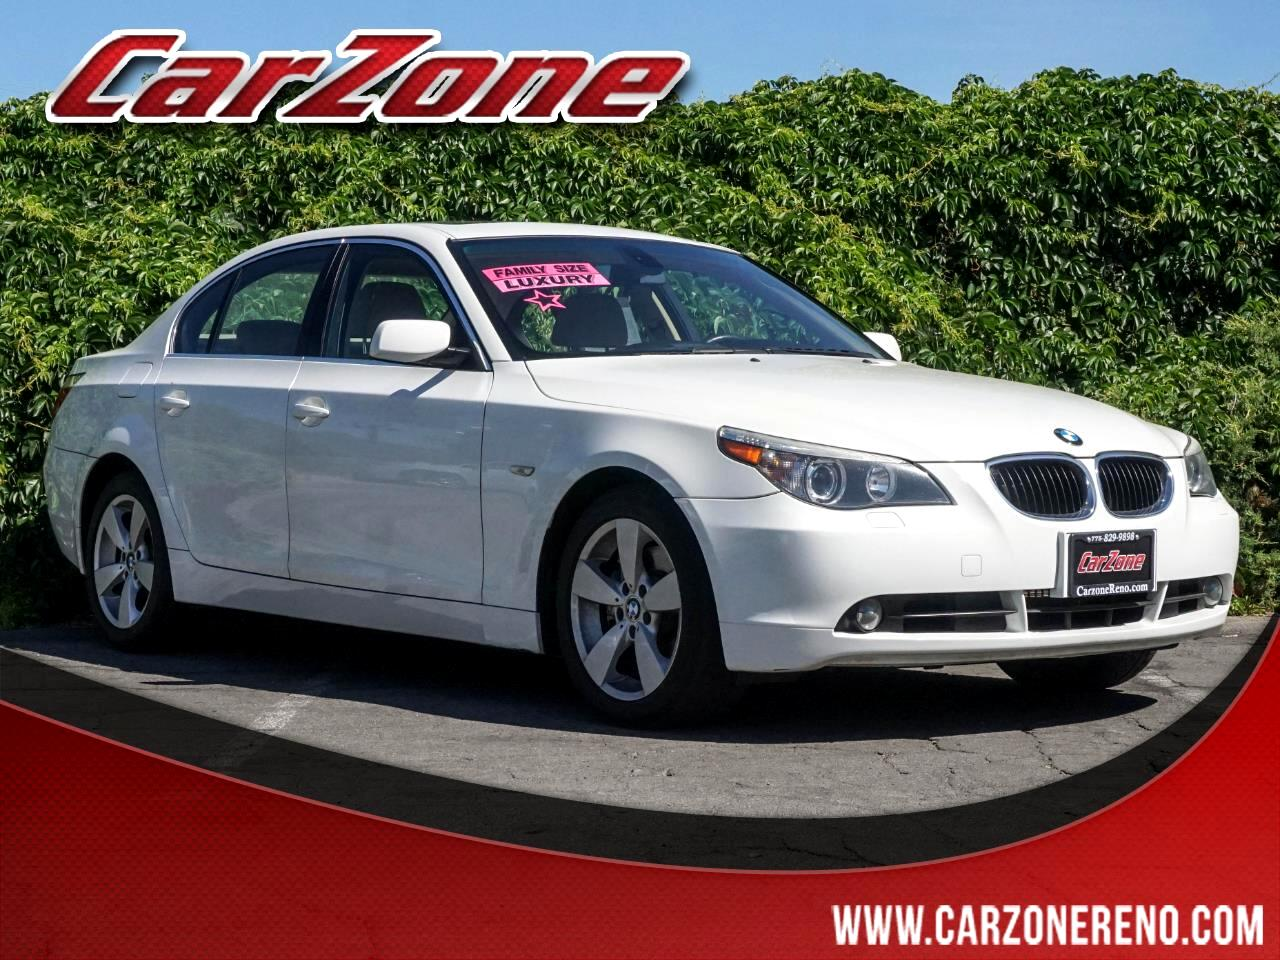 2006 BMW 5 Series 530xi 4dr Sdn AWD